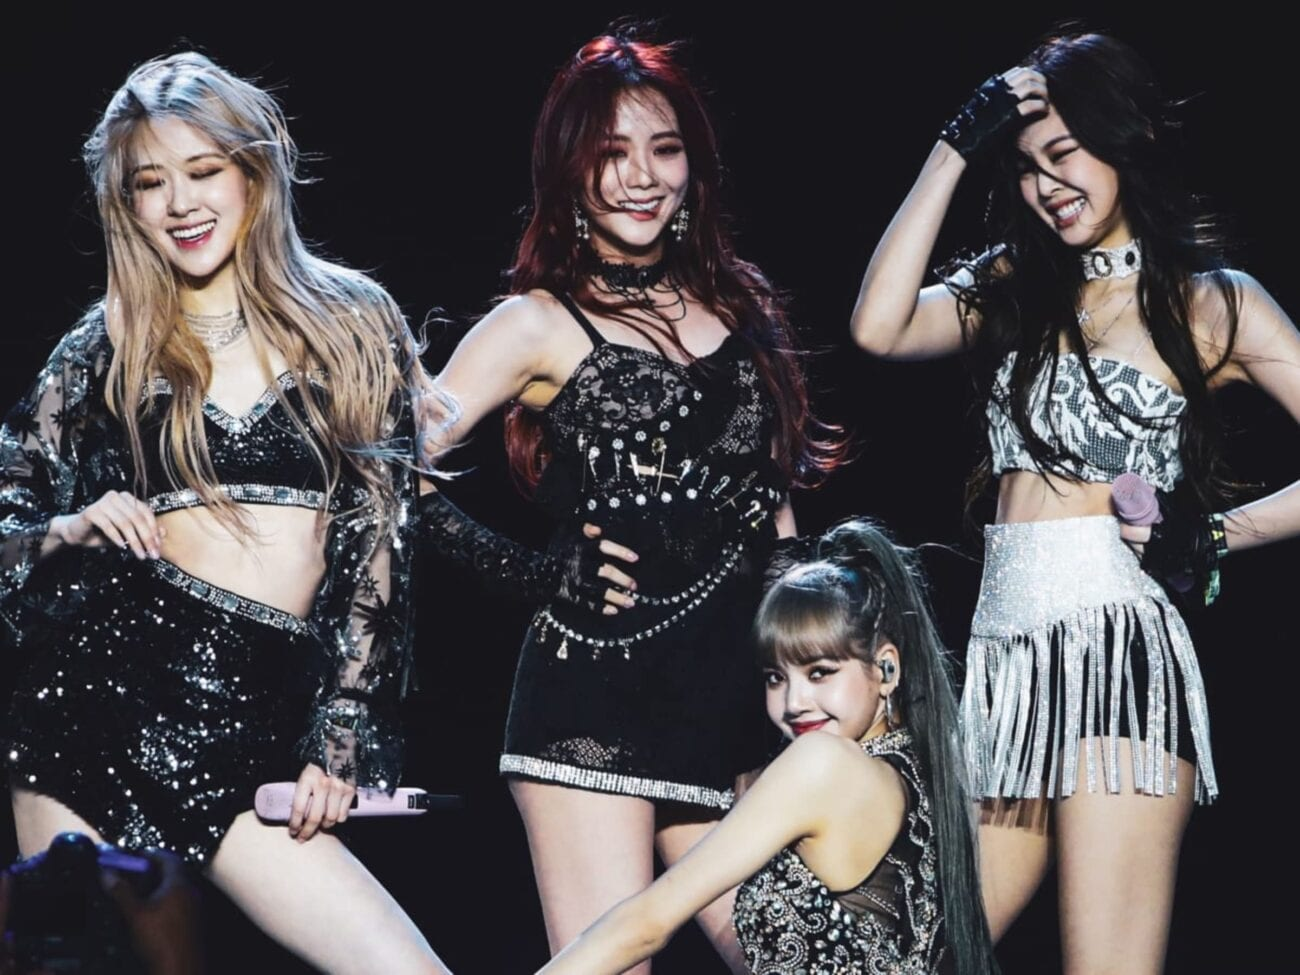 Looking for an all new K-pop obsession? Prepare to fall in love with some of the hottest female idols from Blackpink.